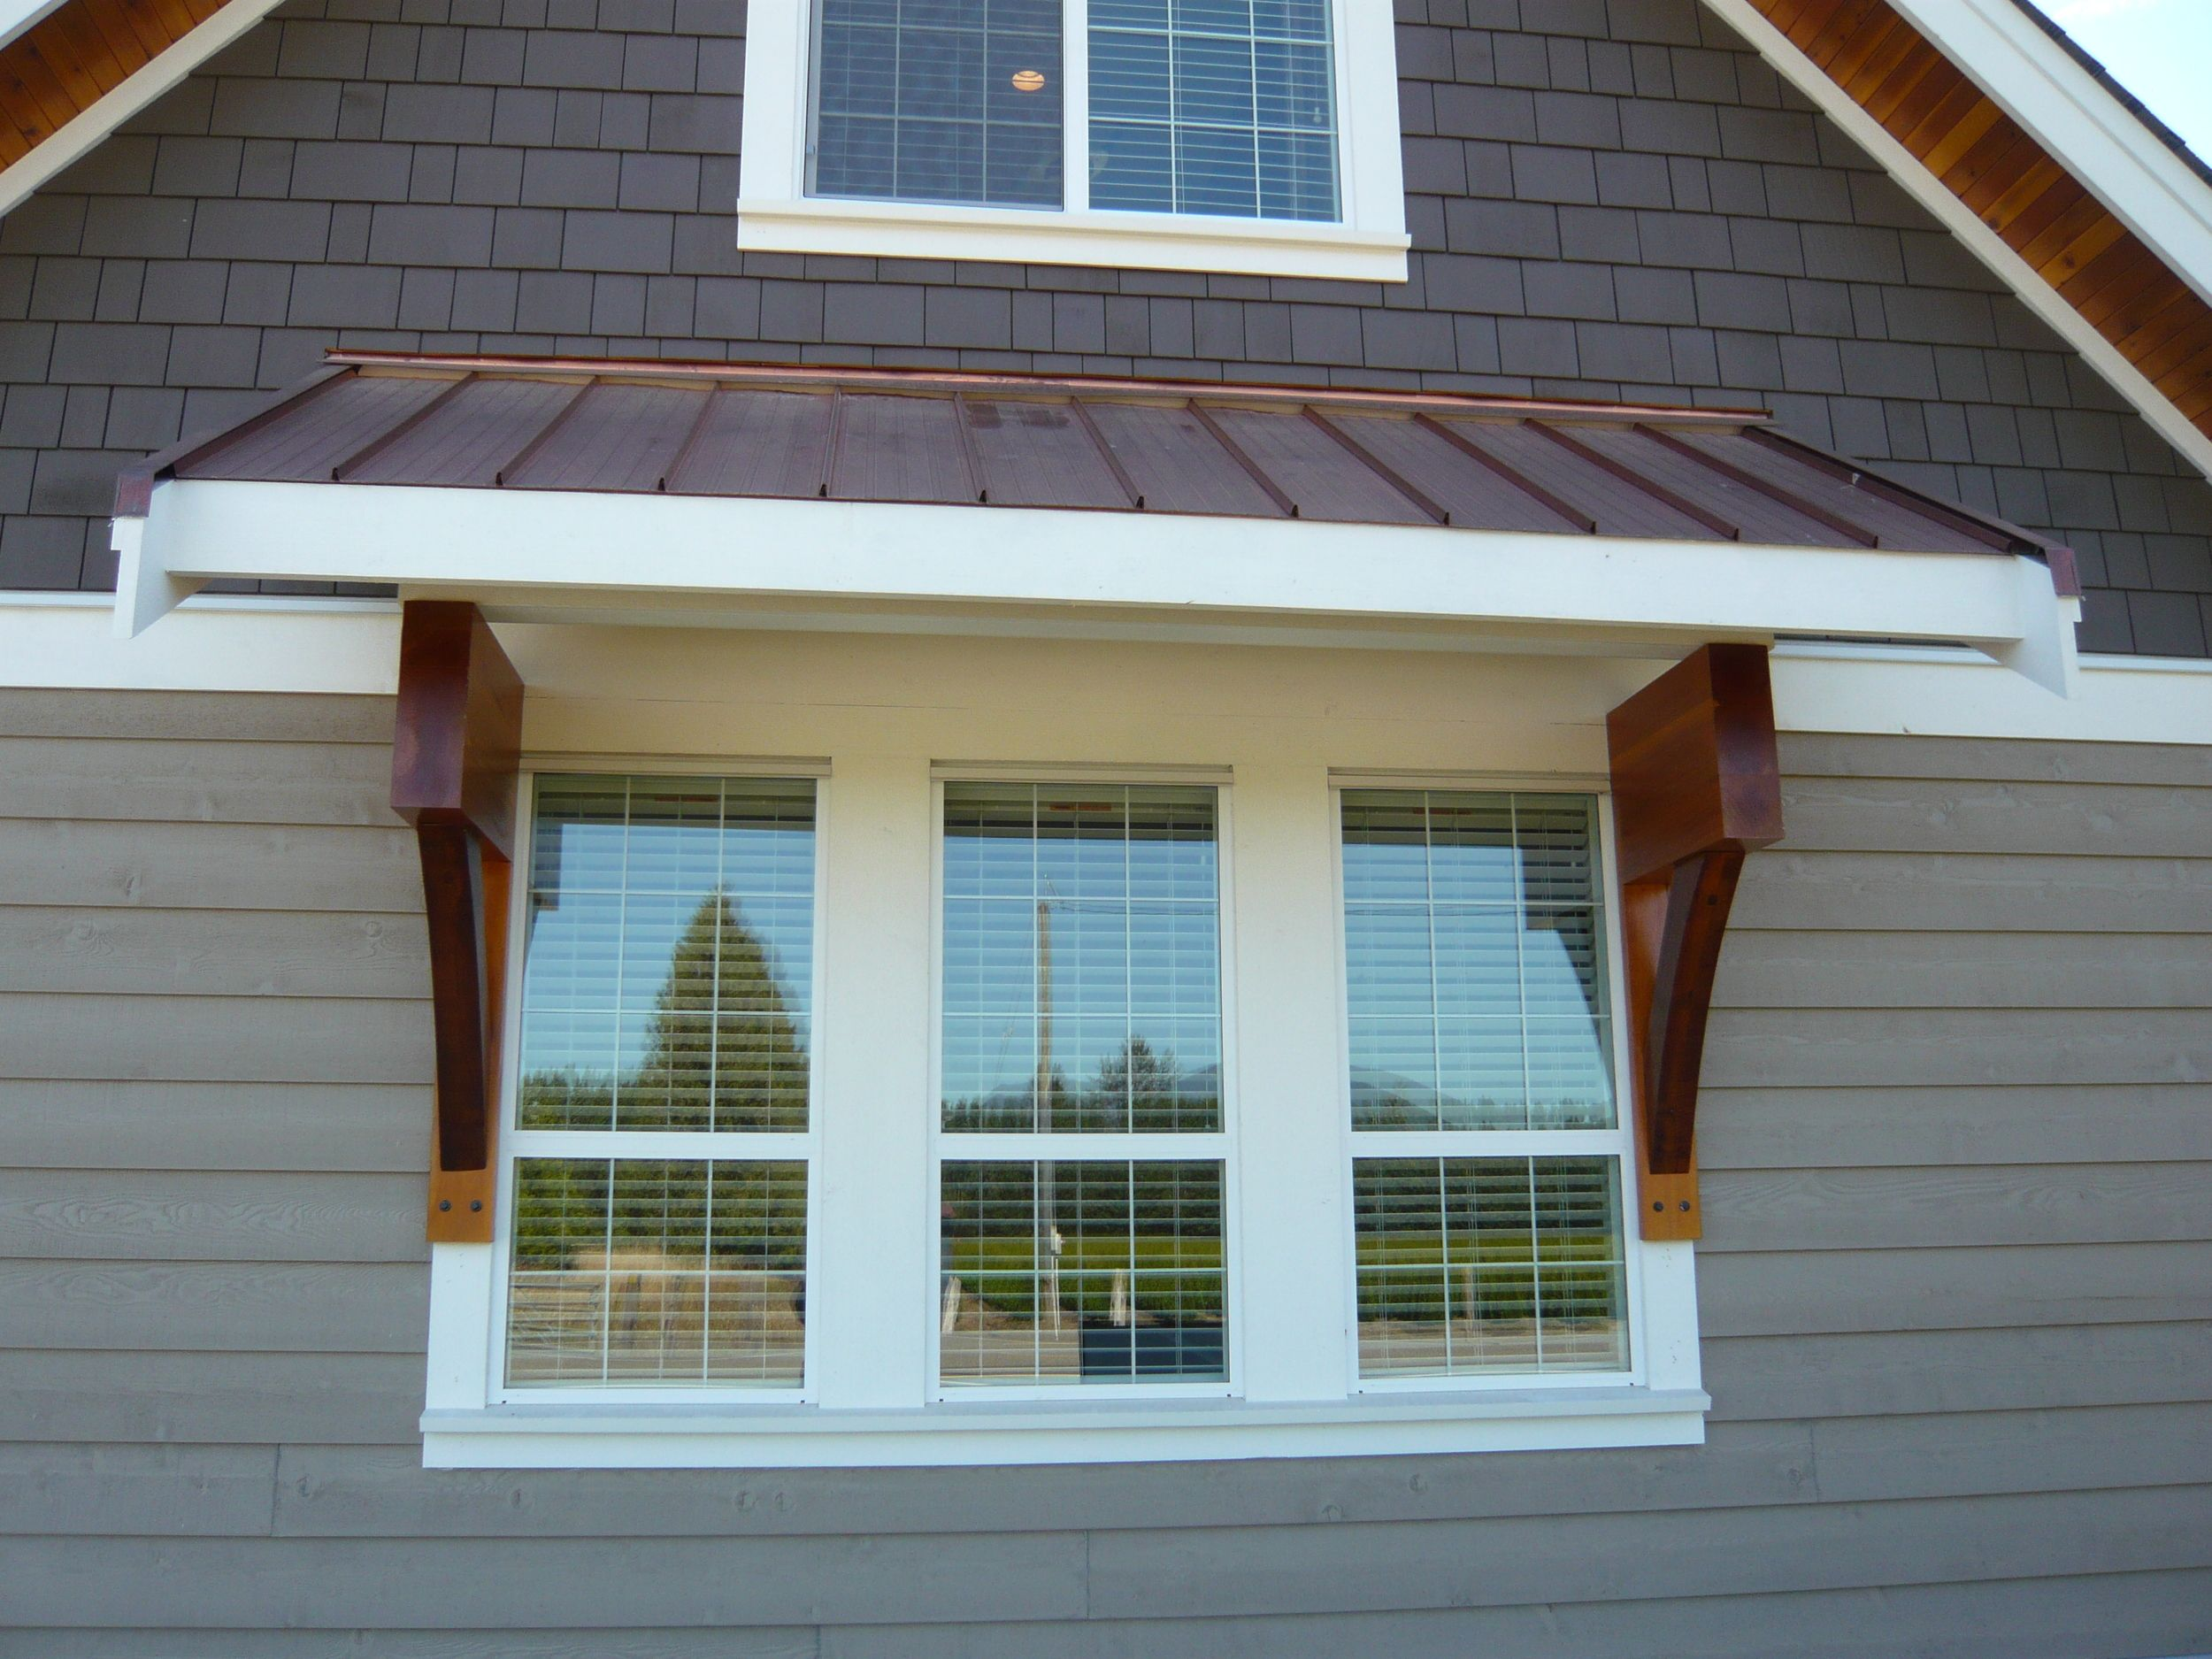 Copper Roof Copper Roof House Metal Roof Colors Roof Paint